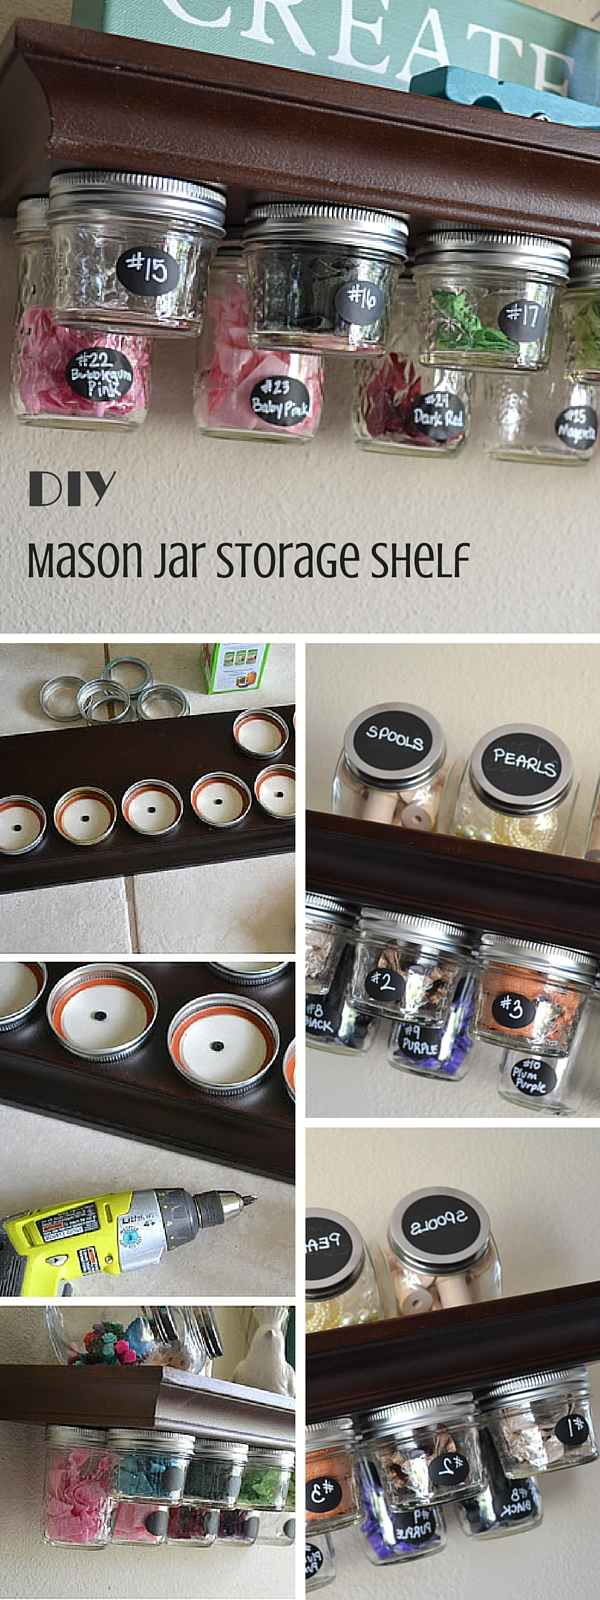 Check out the tutorial: #DIY Mason Jar Storage Shelf #crafts